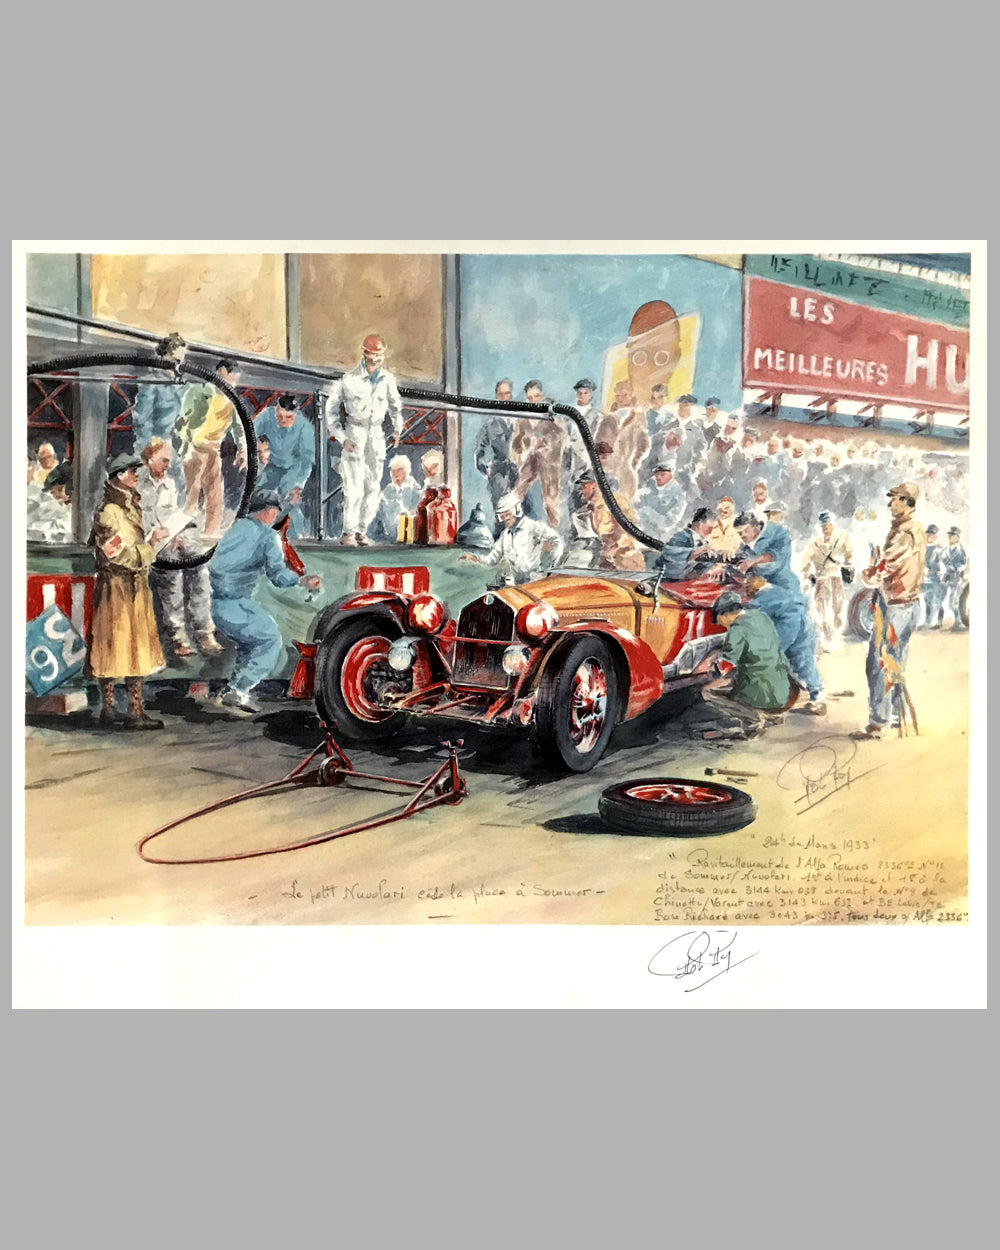 1933 - 24 Heures du Mans print by Rob Roy